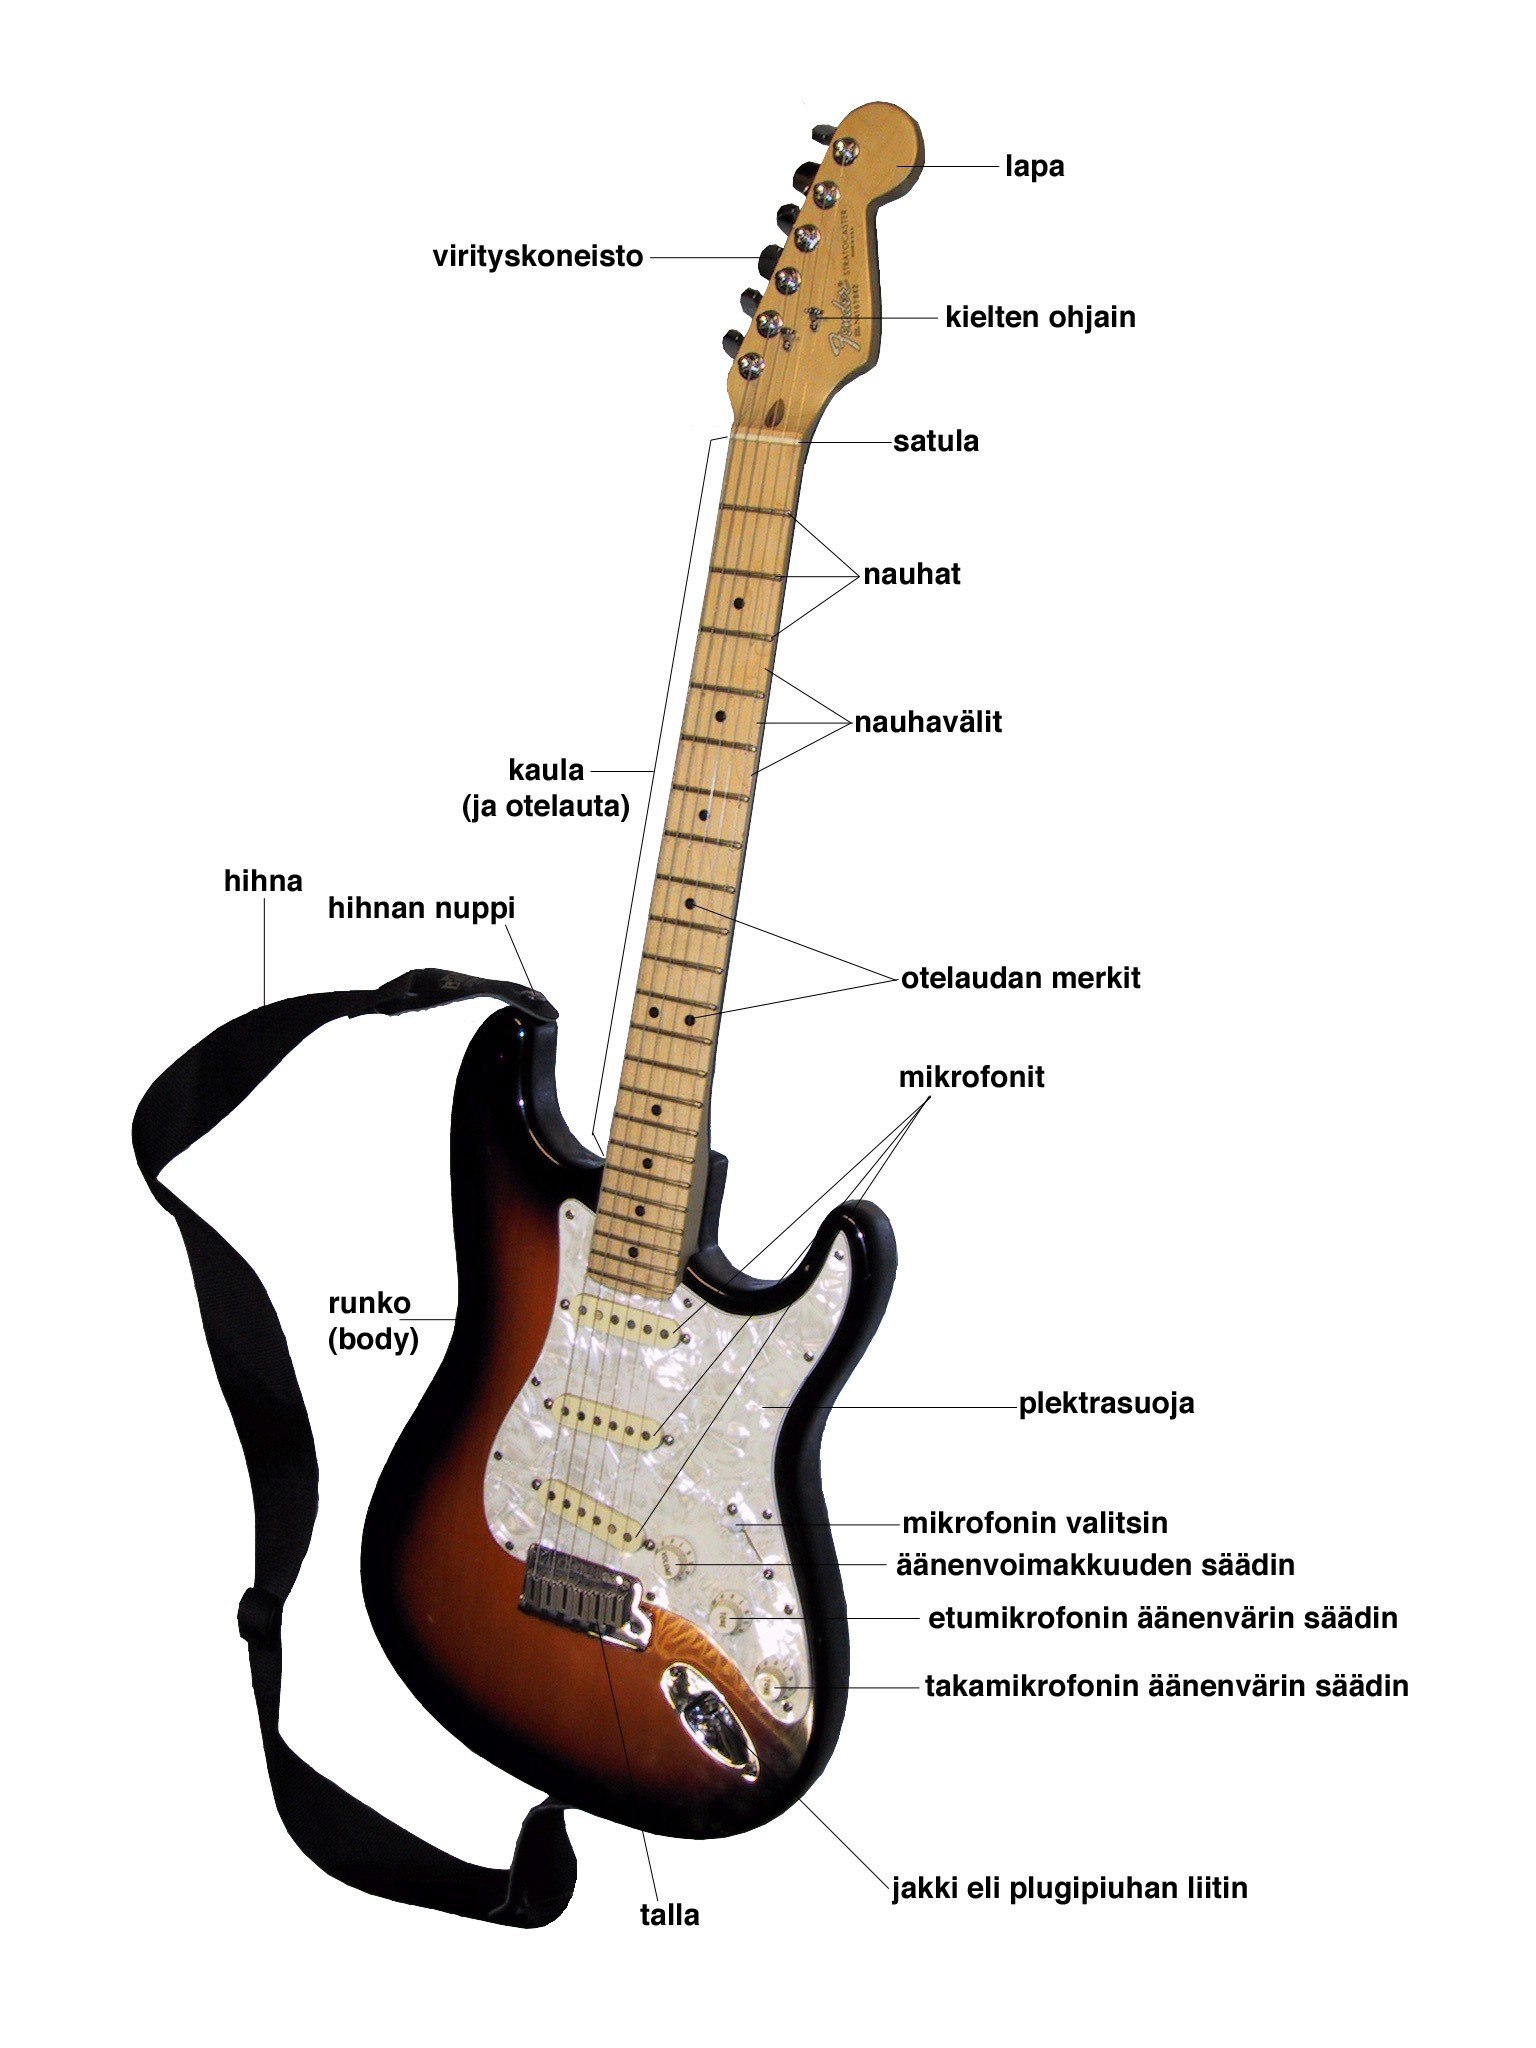 Acoustic Electric Guitar Parts Diagram | My Wiring DIagram